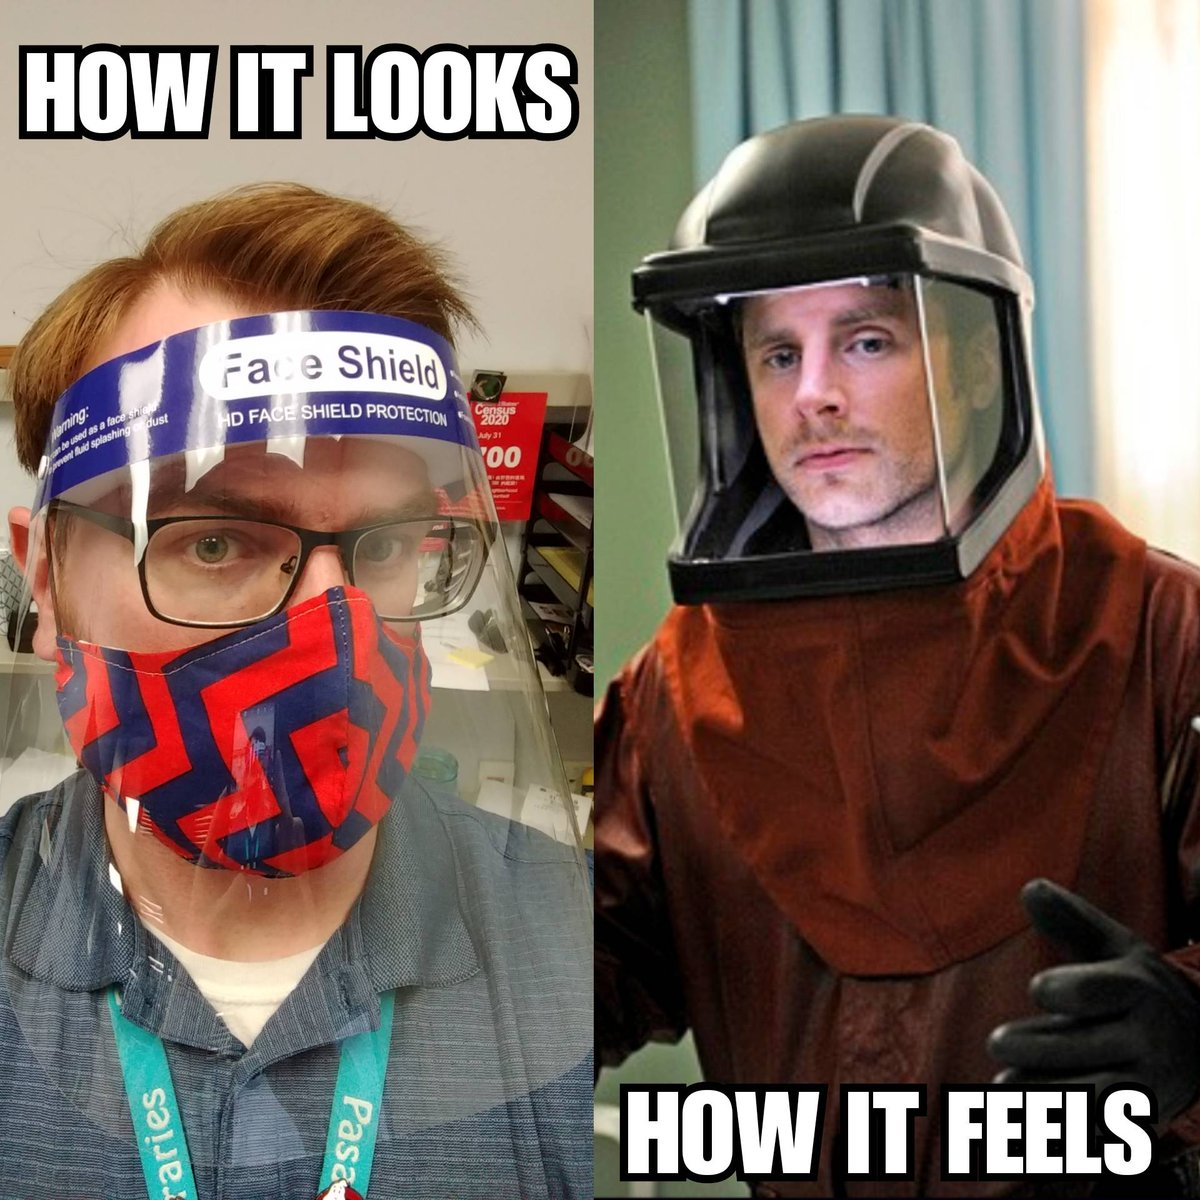 Got our PPE this week, channeling my circa 2010 Shawn Spencer with @JamesRoday #libraries #work #psych